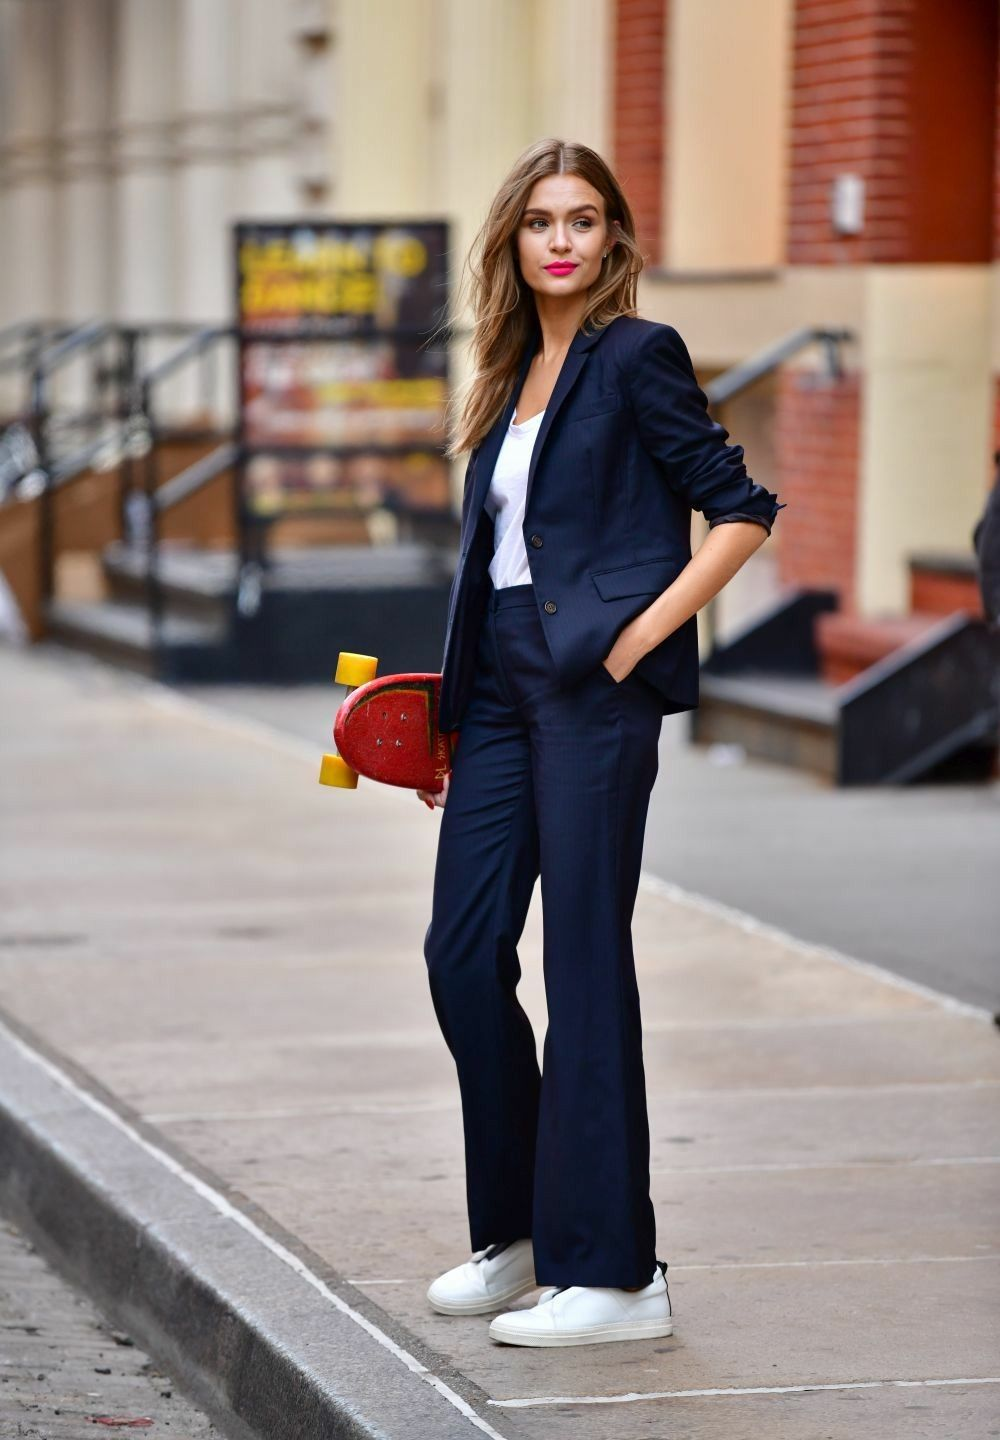 Navy suit outfit with white trainers